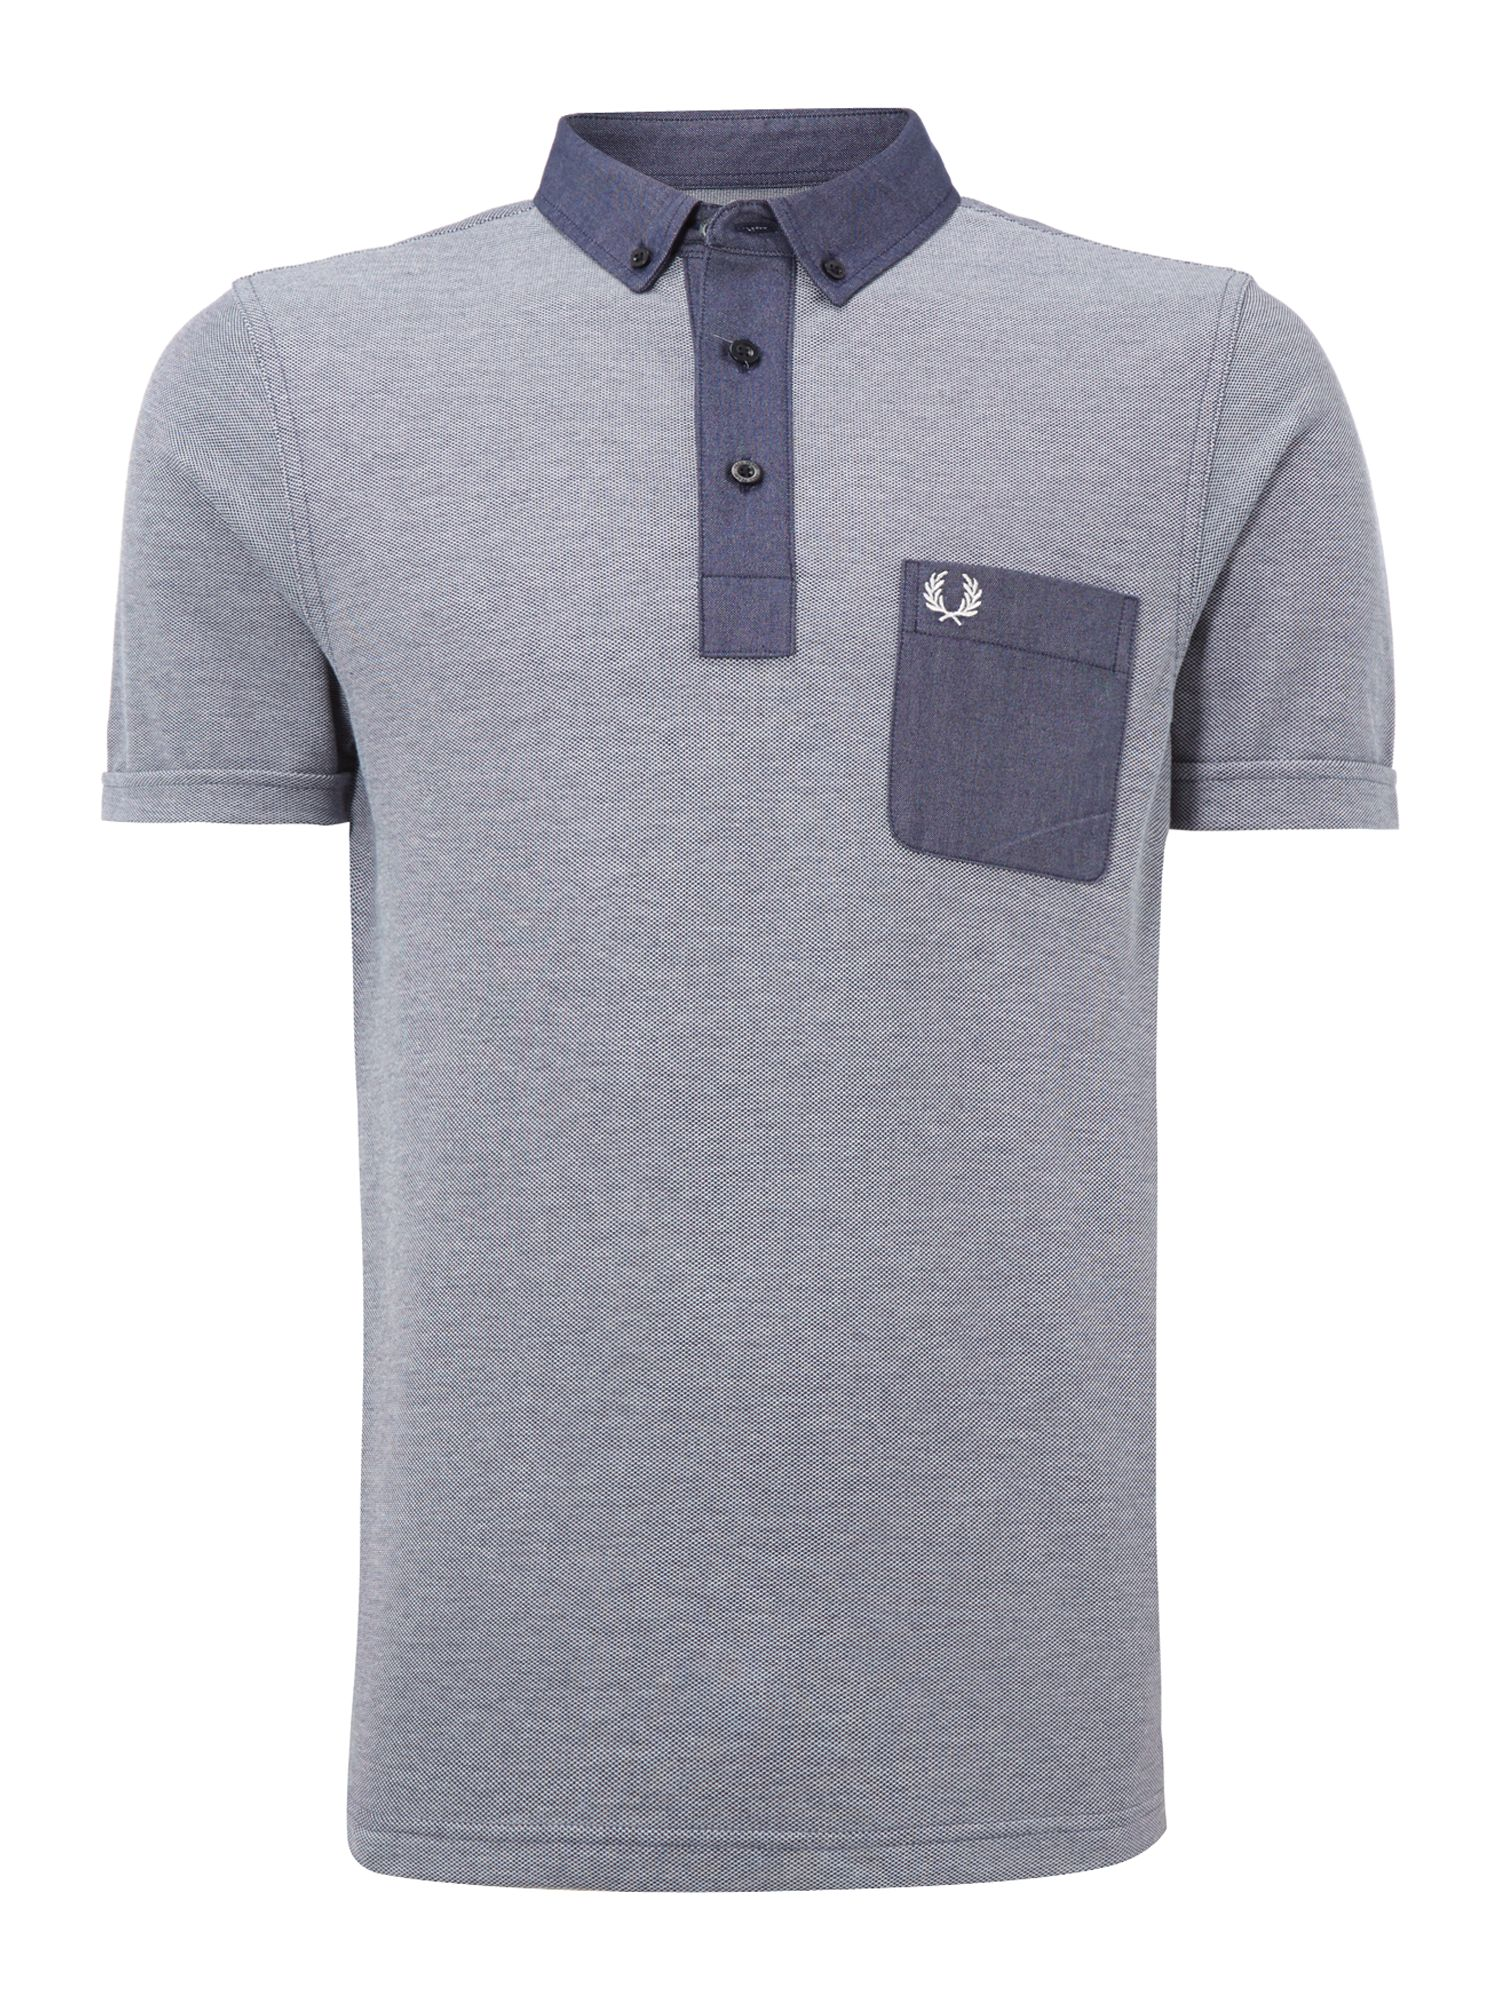 Trimmed tonic print polo shirt